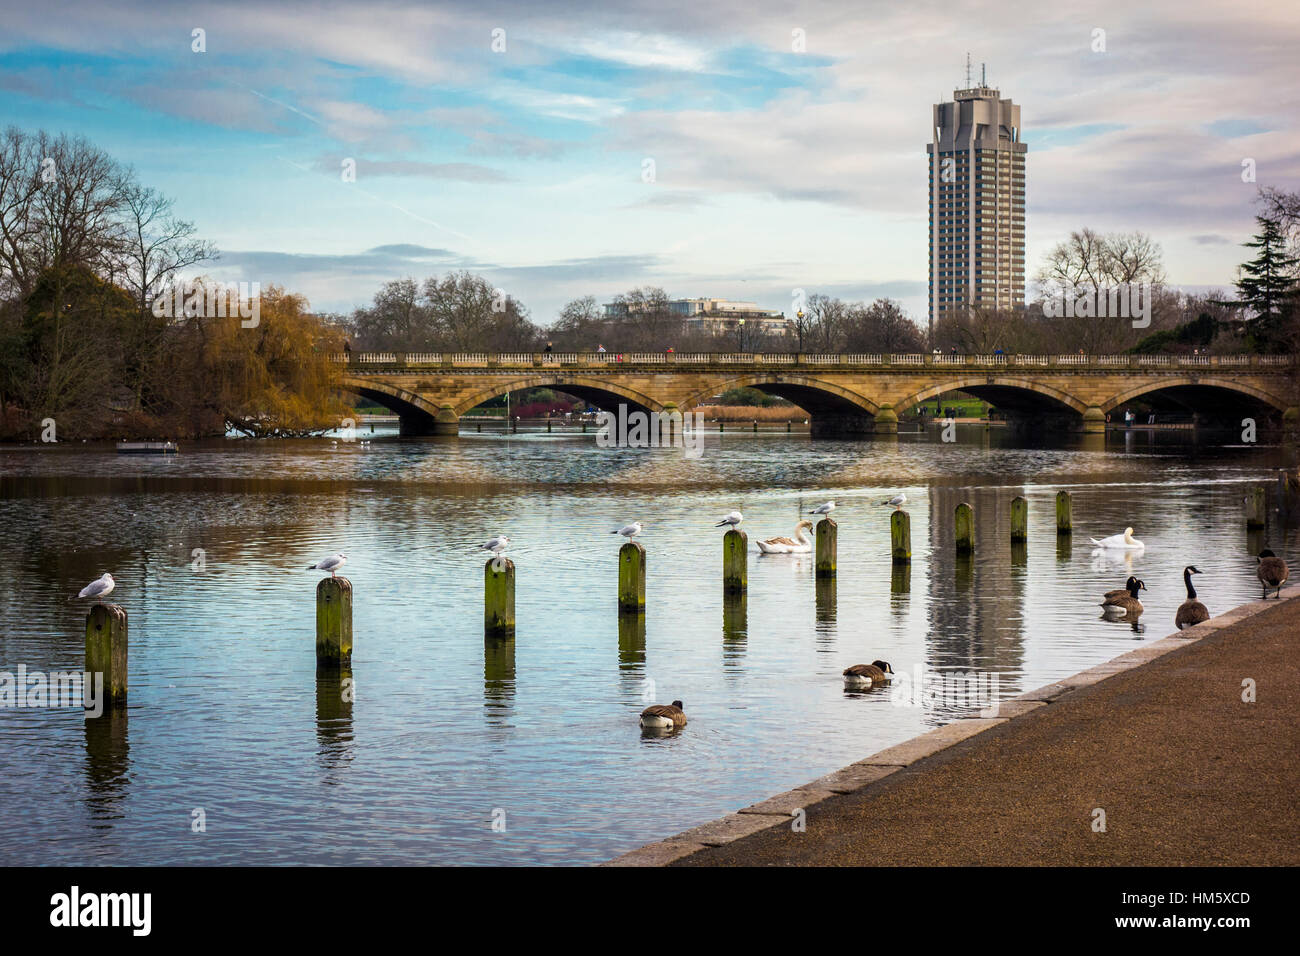 The Long Water Kensington Gardens with Basil Spence's tower (Hyde Park Barracks) in the background, London, - Stock Image